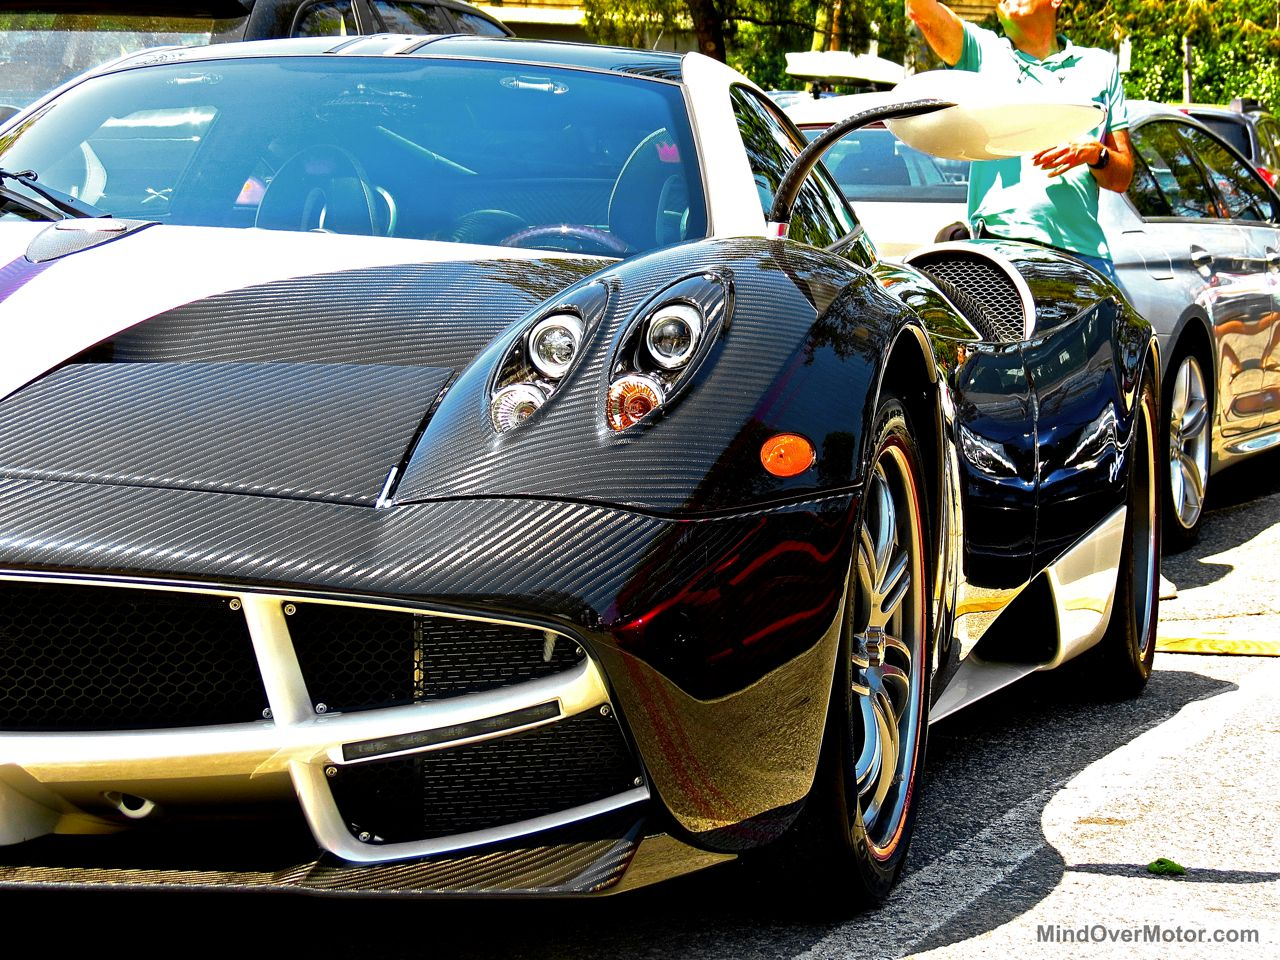 Greenwich Pagani Huayra black and white